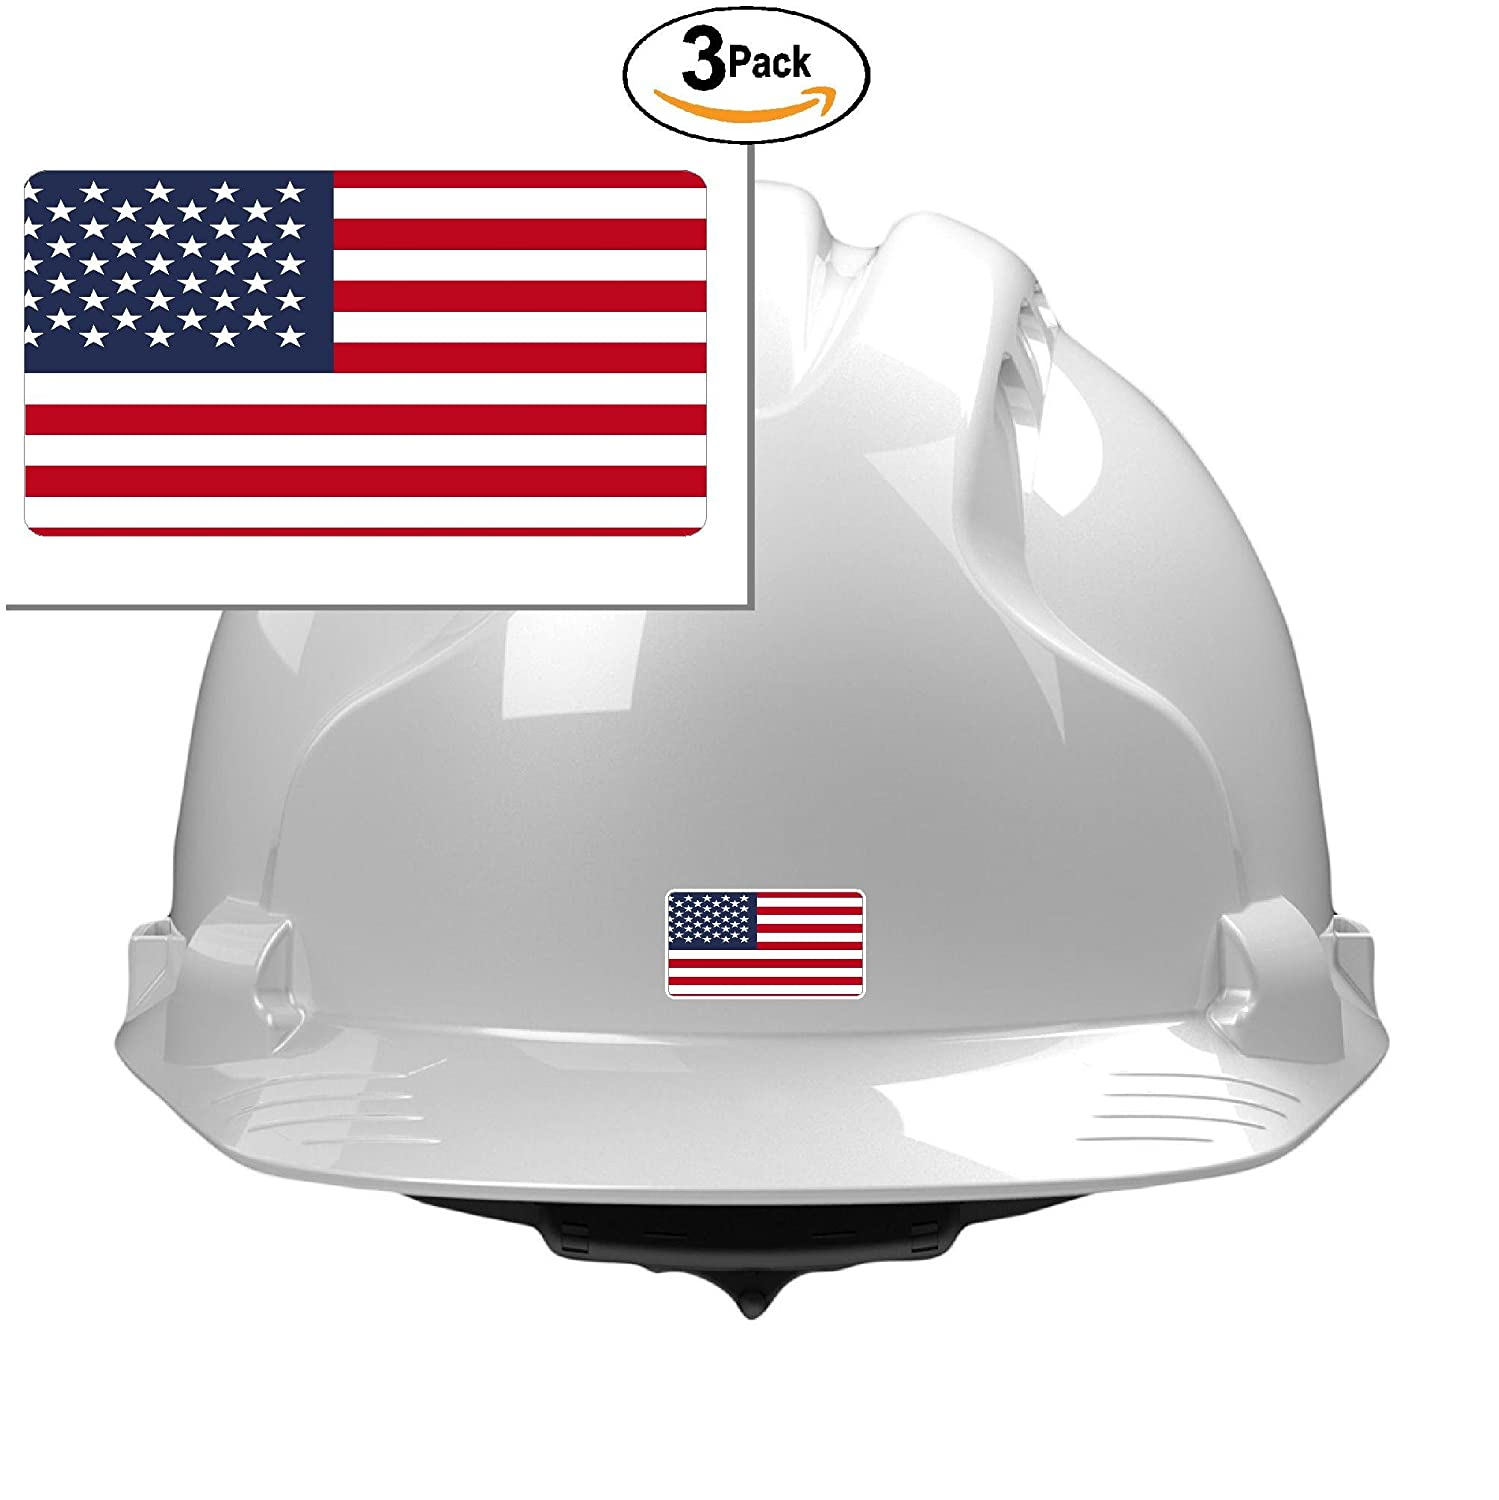 3 usa flag 3x1 size stickers for constrution hard hat pro union working men lunch box tool box symbol window motorcycle biker car made and shipped in